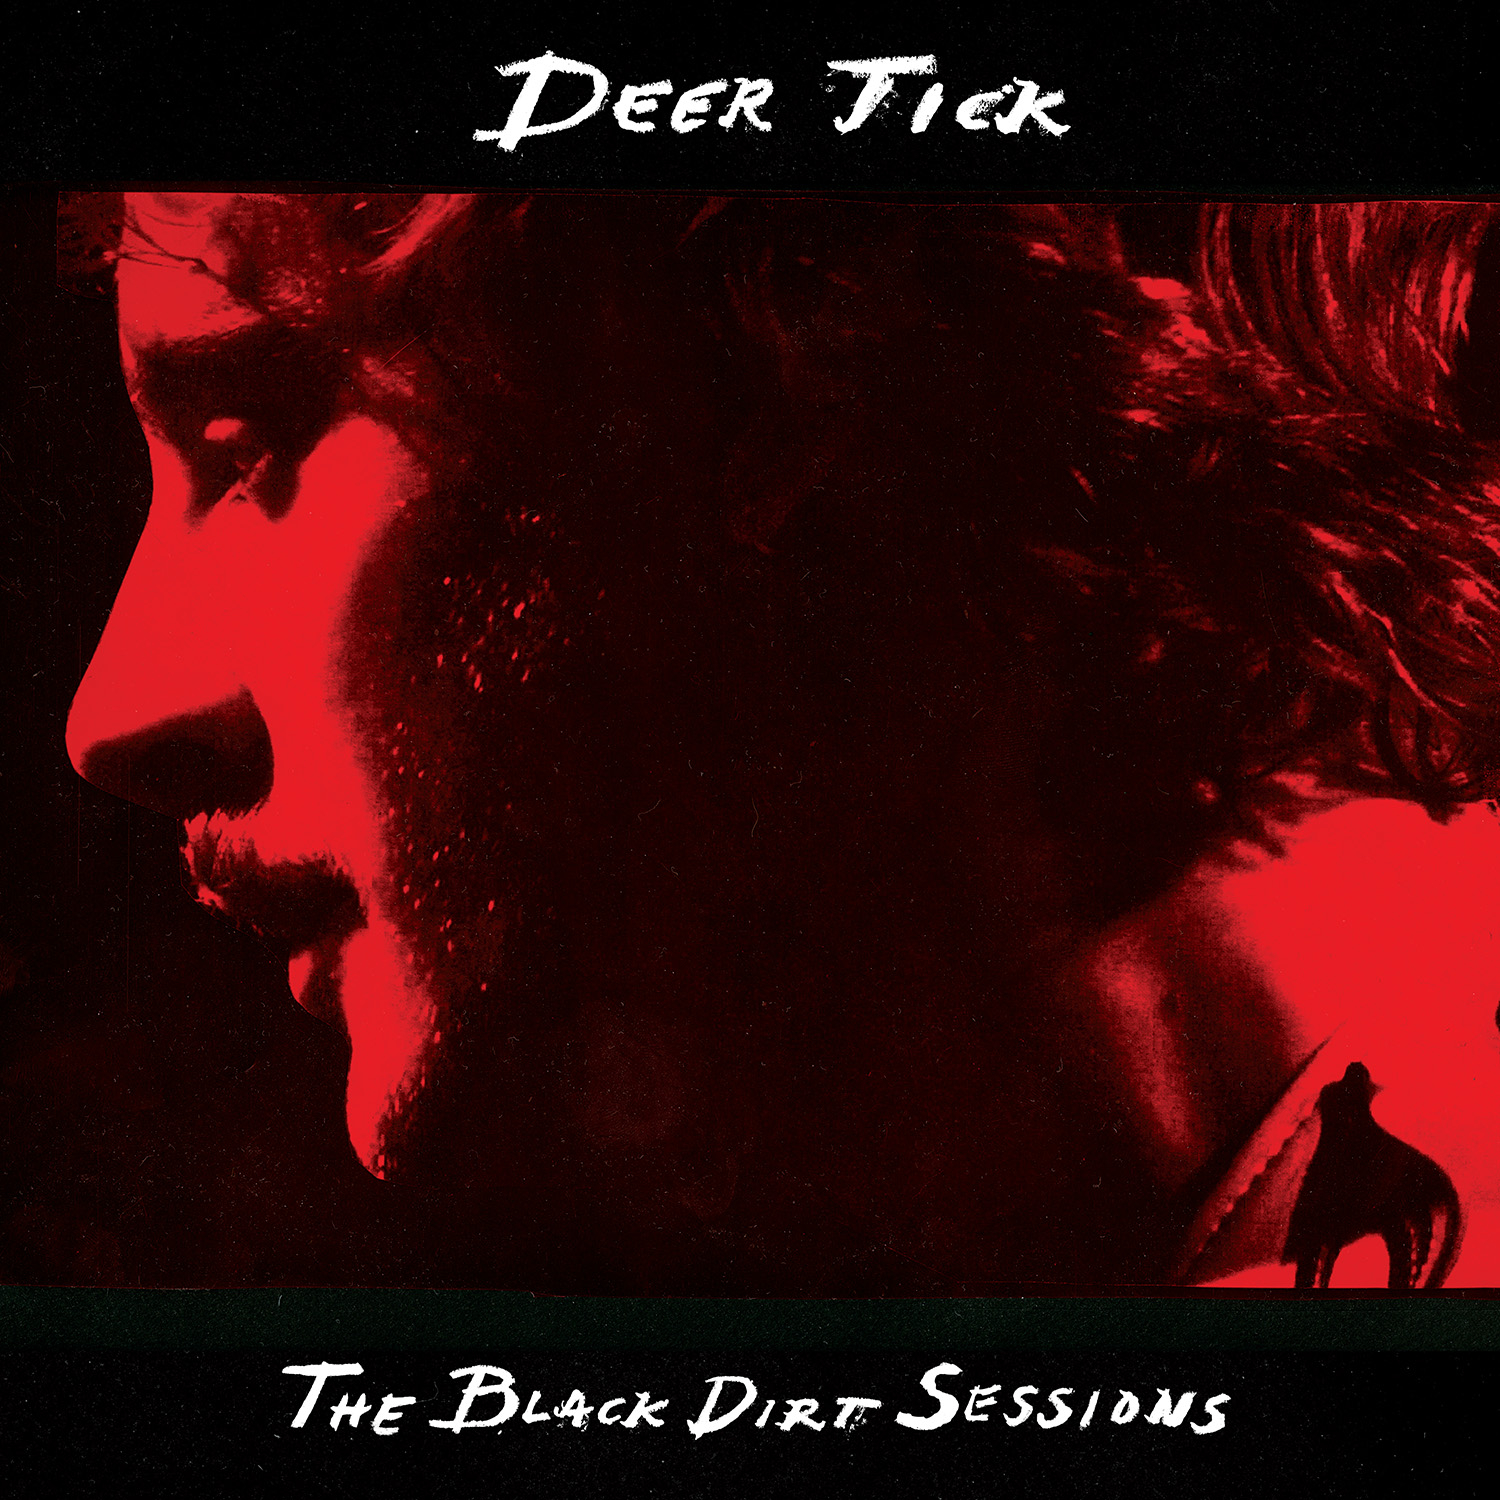 Deer Tick, The Black Dirt Sessions